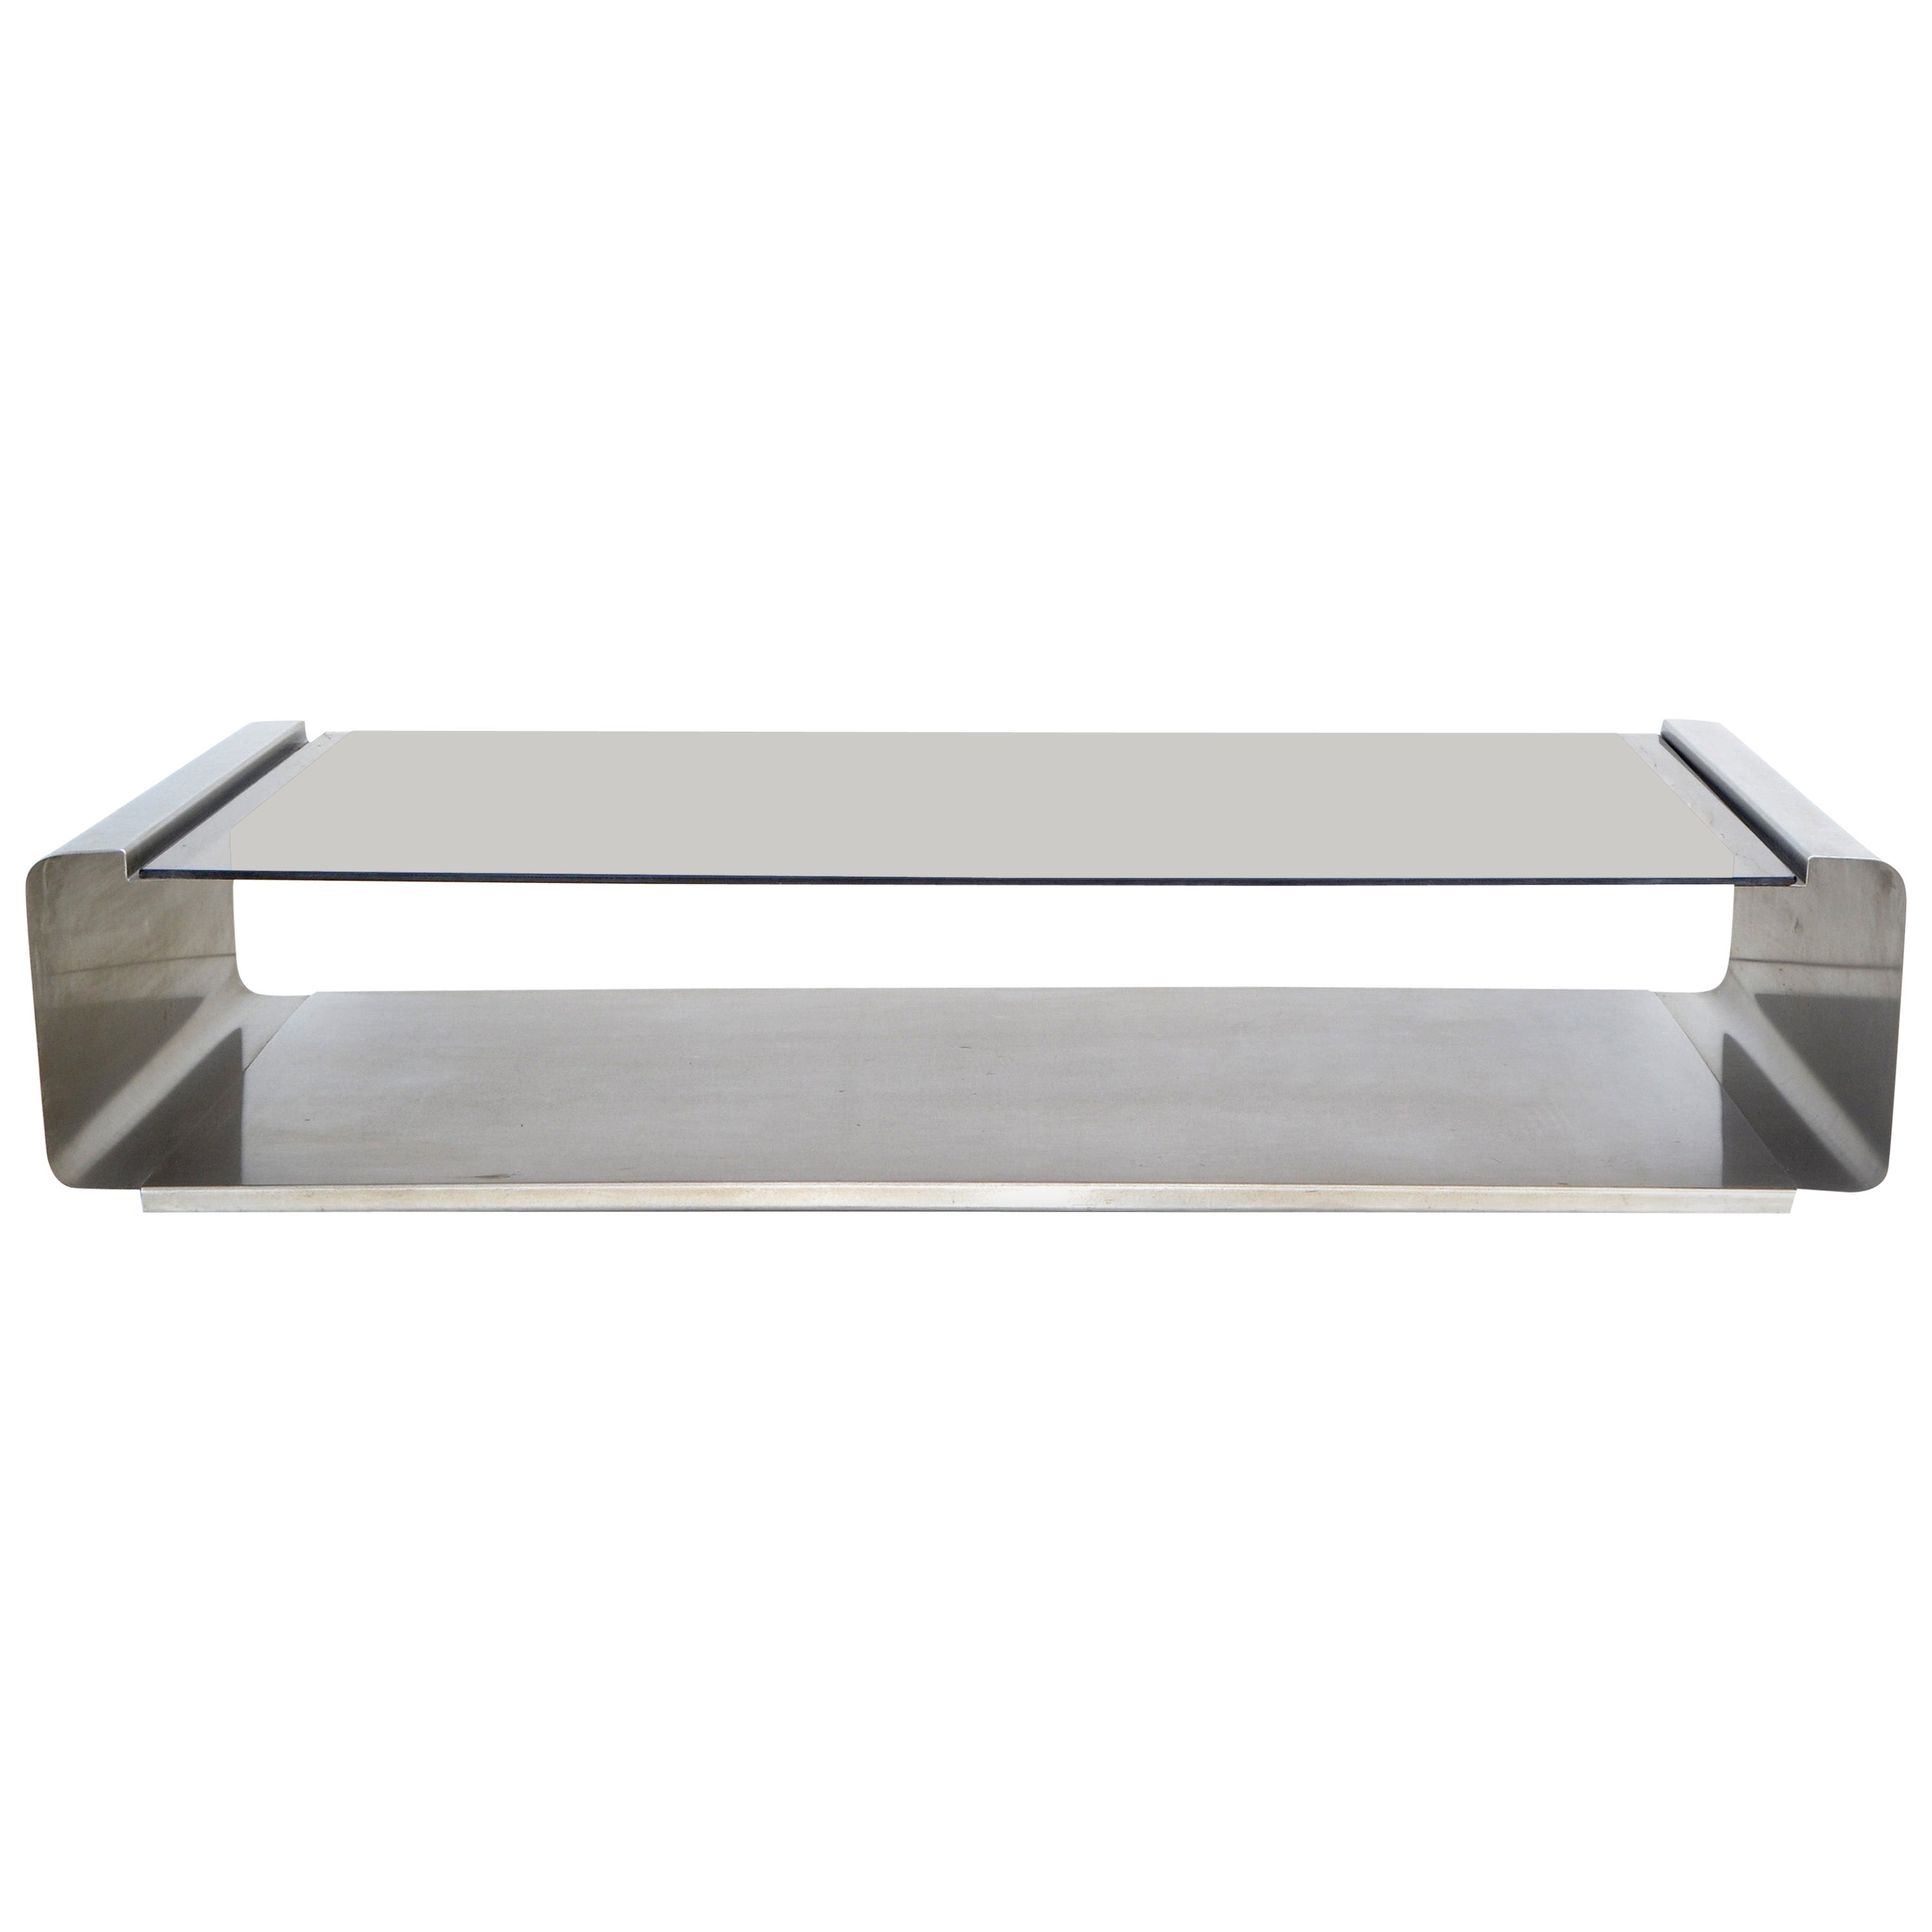 Francois Monnet Mid-Century Modern Coffee Table Smoked Glass and Brushed Steel